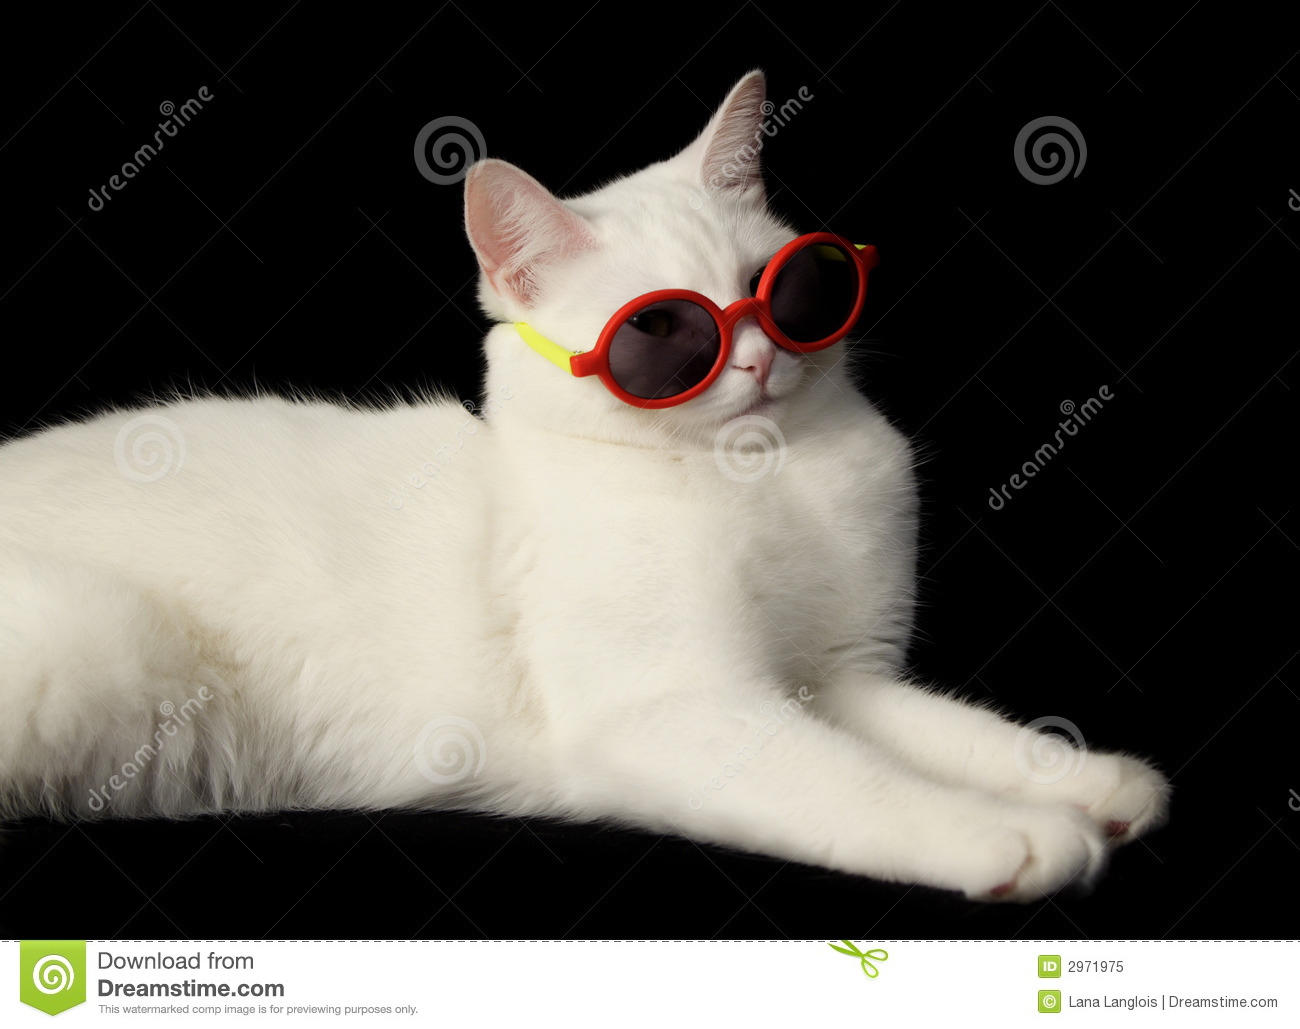 White Cat With Sunglasses Royalty Free Stock Photo - Image: 2971975